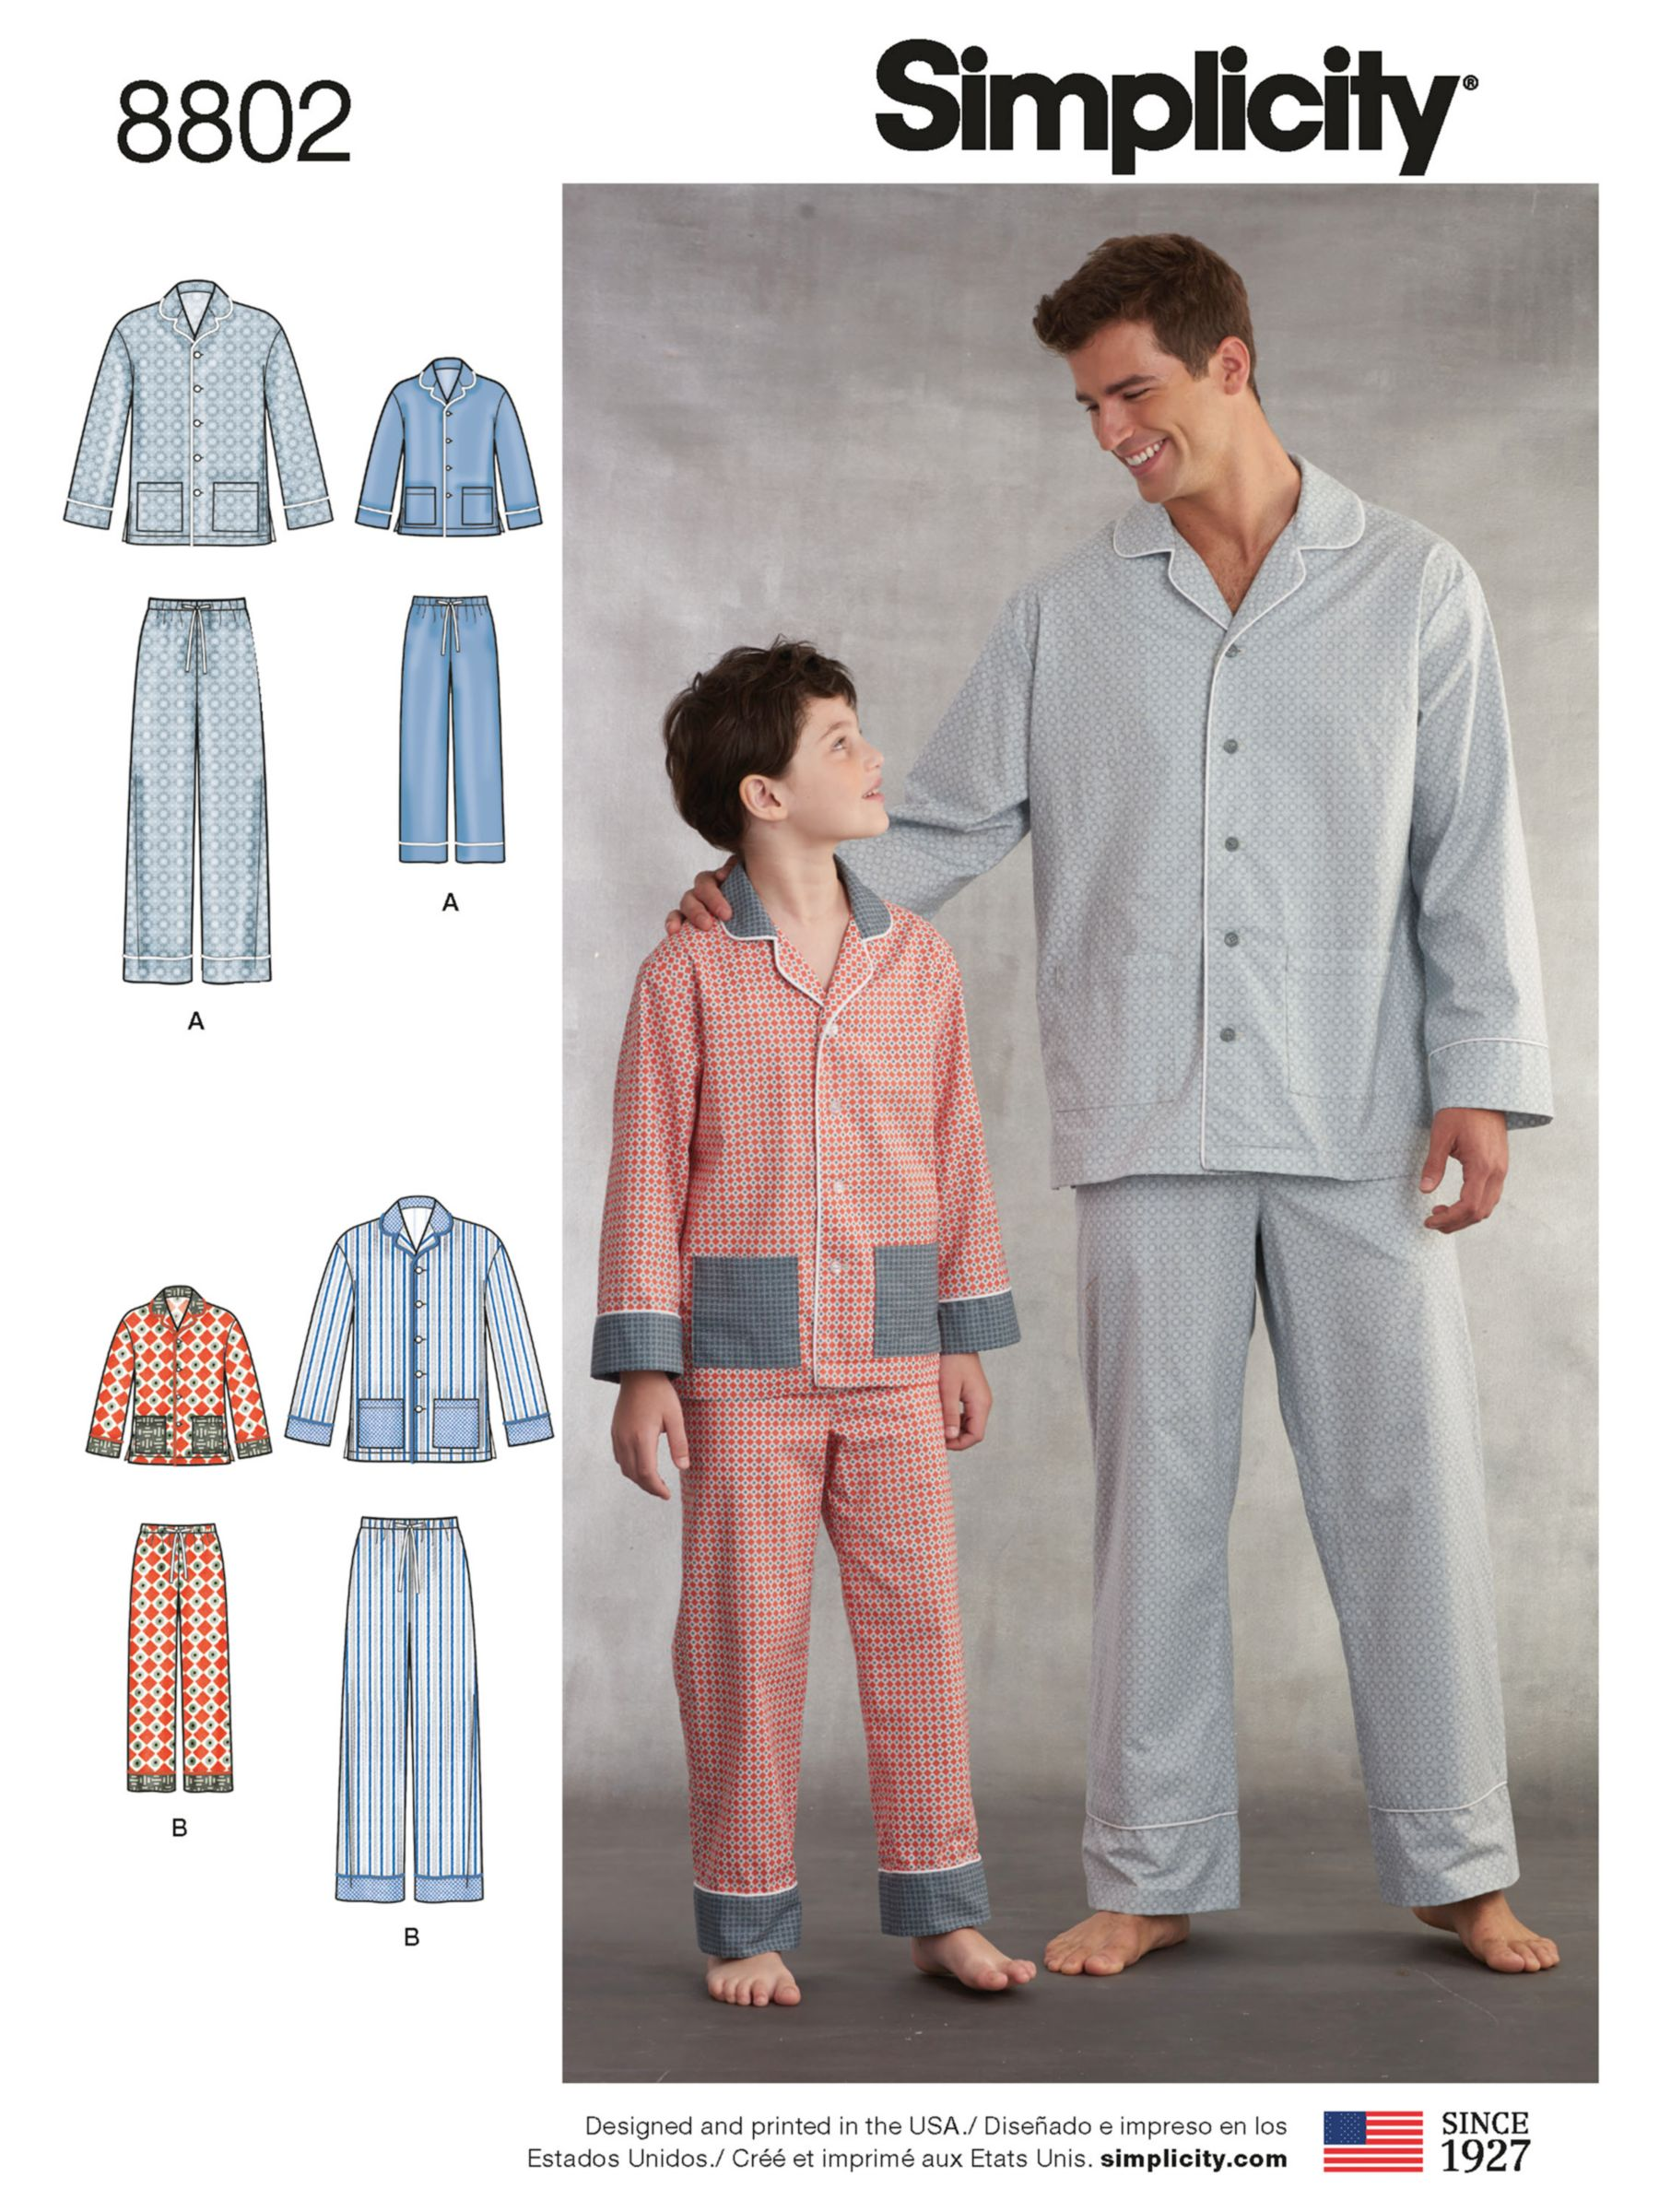 Simplicity Simplicity Men's and Children's Pyjama Sewing Pattern, 8802